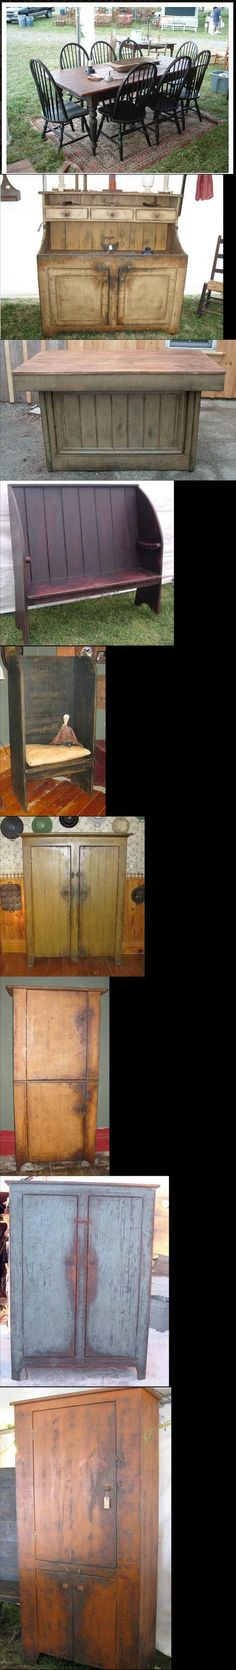 Stuffer's Antiques & Reproductions, great primitive furniture.